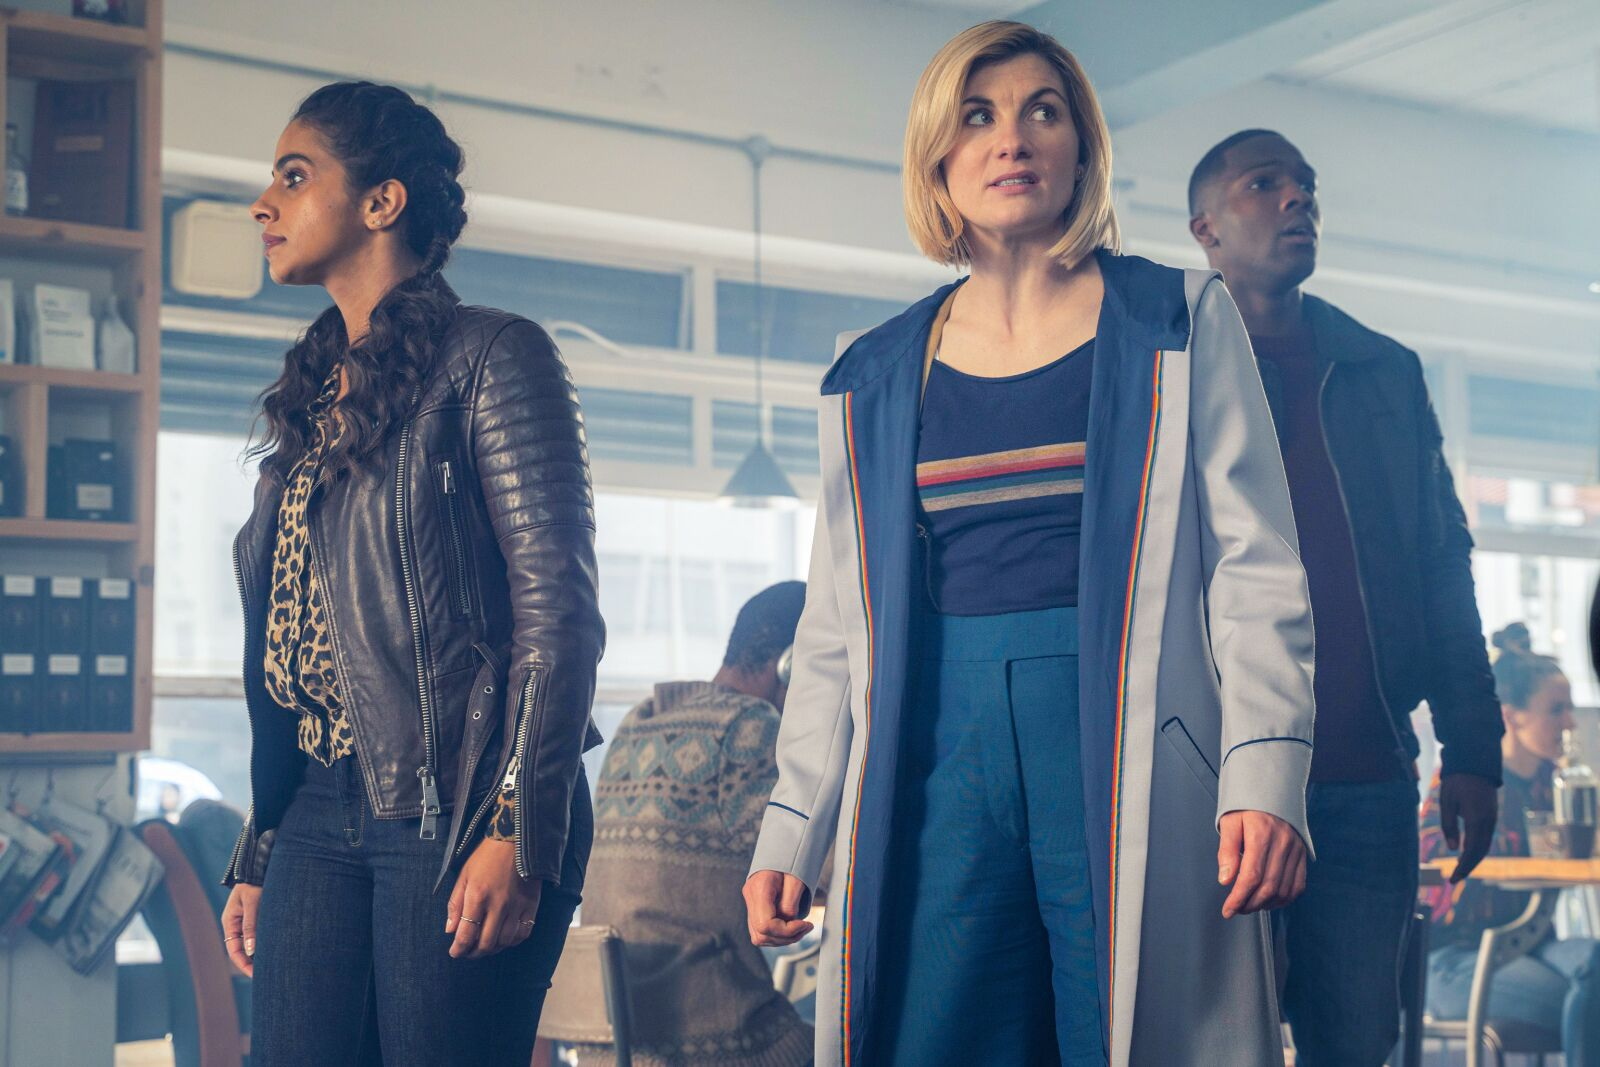 Doctor Who spoilers: Which character made a surprise return in Fugitive of the Judoon?